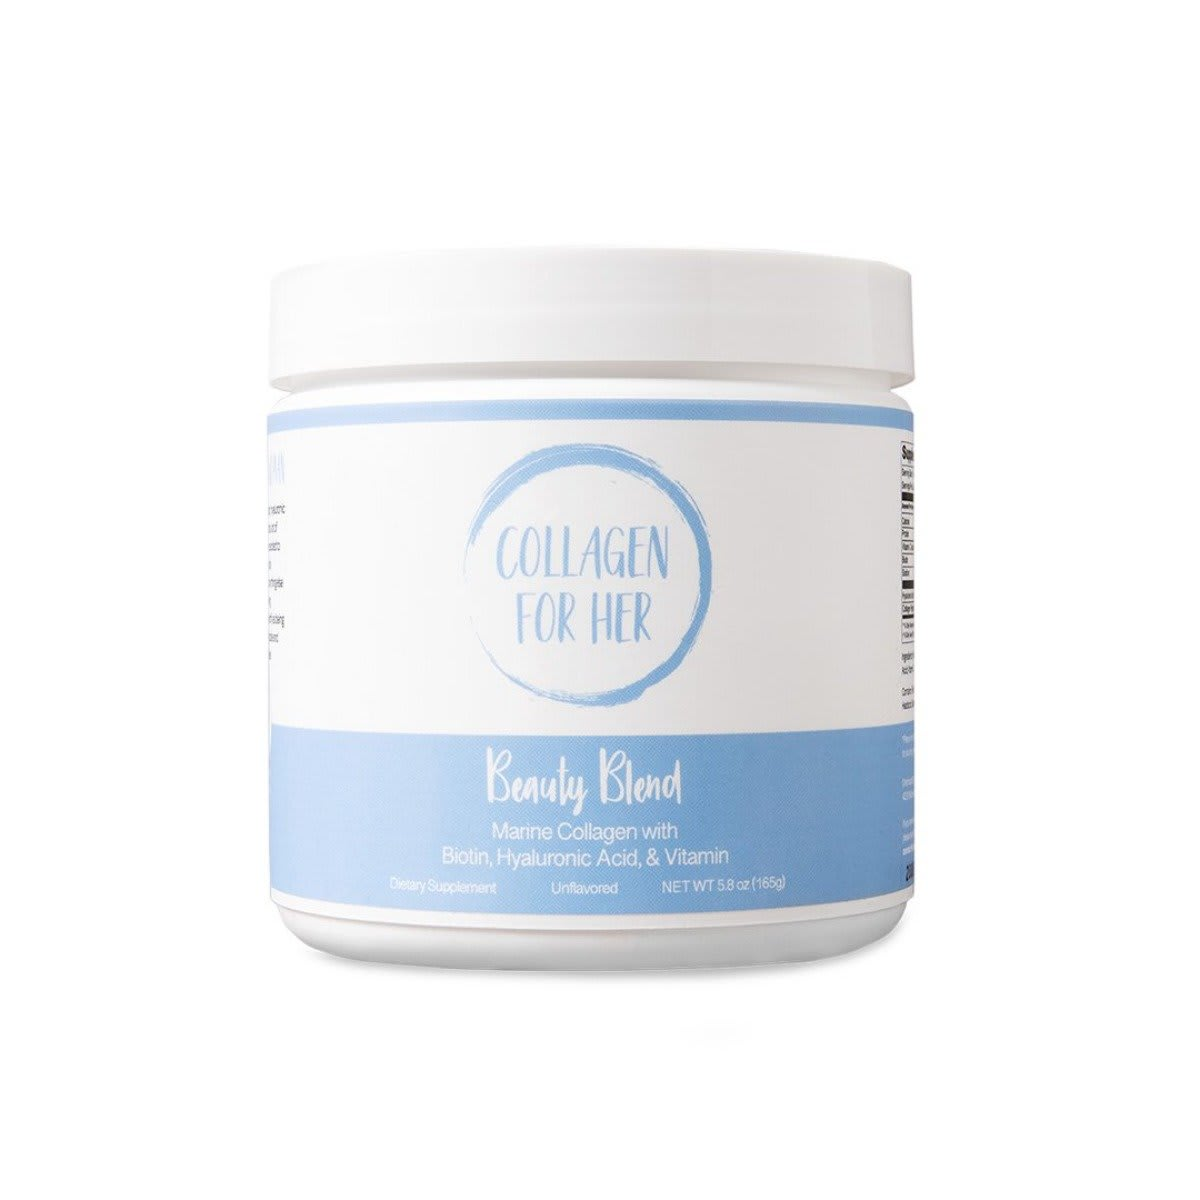 Collagen For Her Beauty Blend Marine Collagen with Biotin, Hyaluronic Acid, & Vitamin. Dietary Supplement. Unflavored. Net Wt 5.8oz (165g)